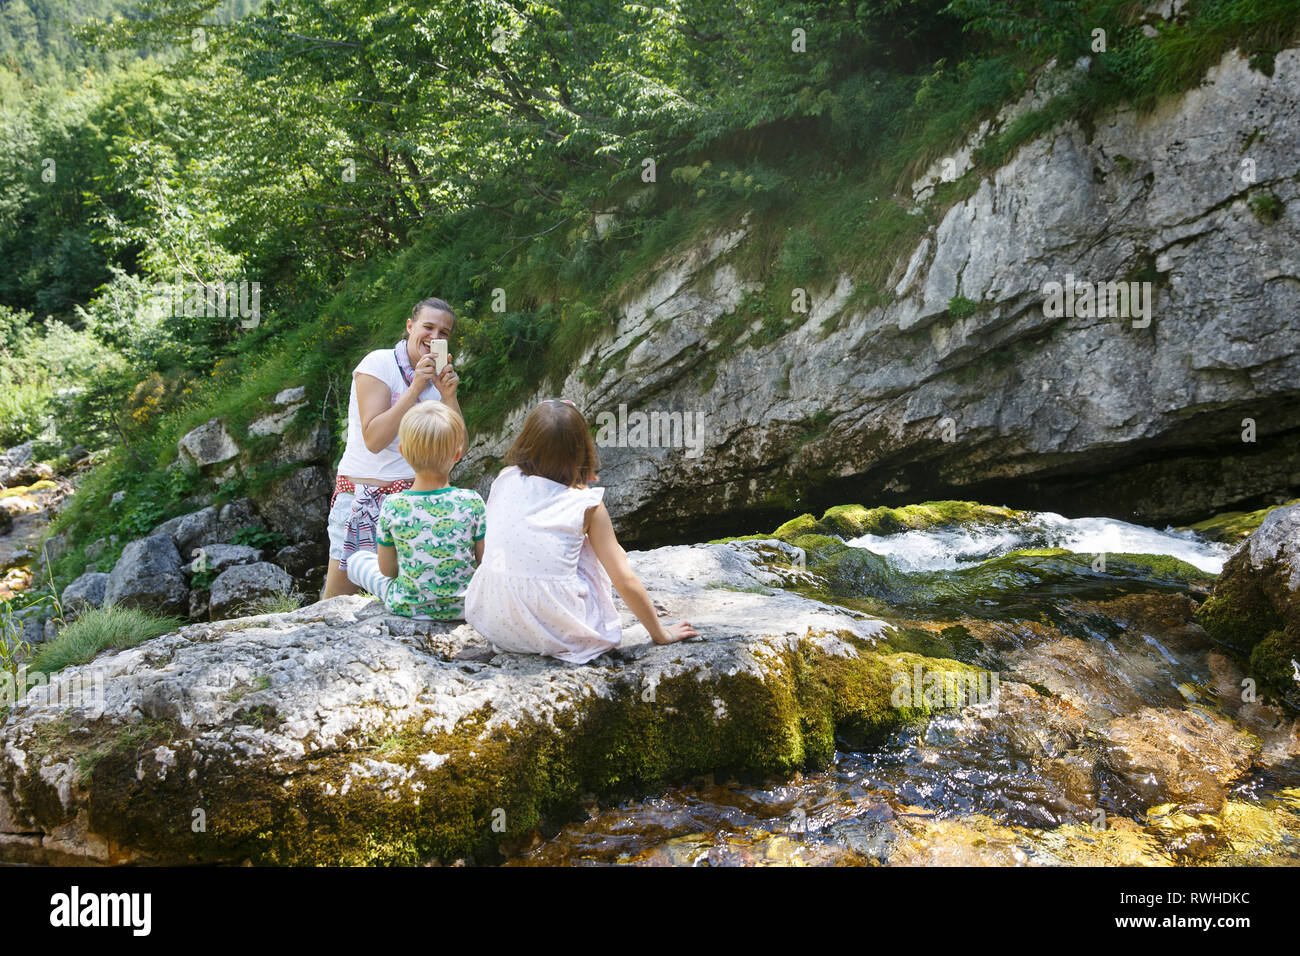 Mother taking a snapshot of kids on a family trip by a mountain stream. Outdoor lifestyle, positive parenting, childhood experience concept. - Stock Image